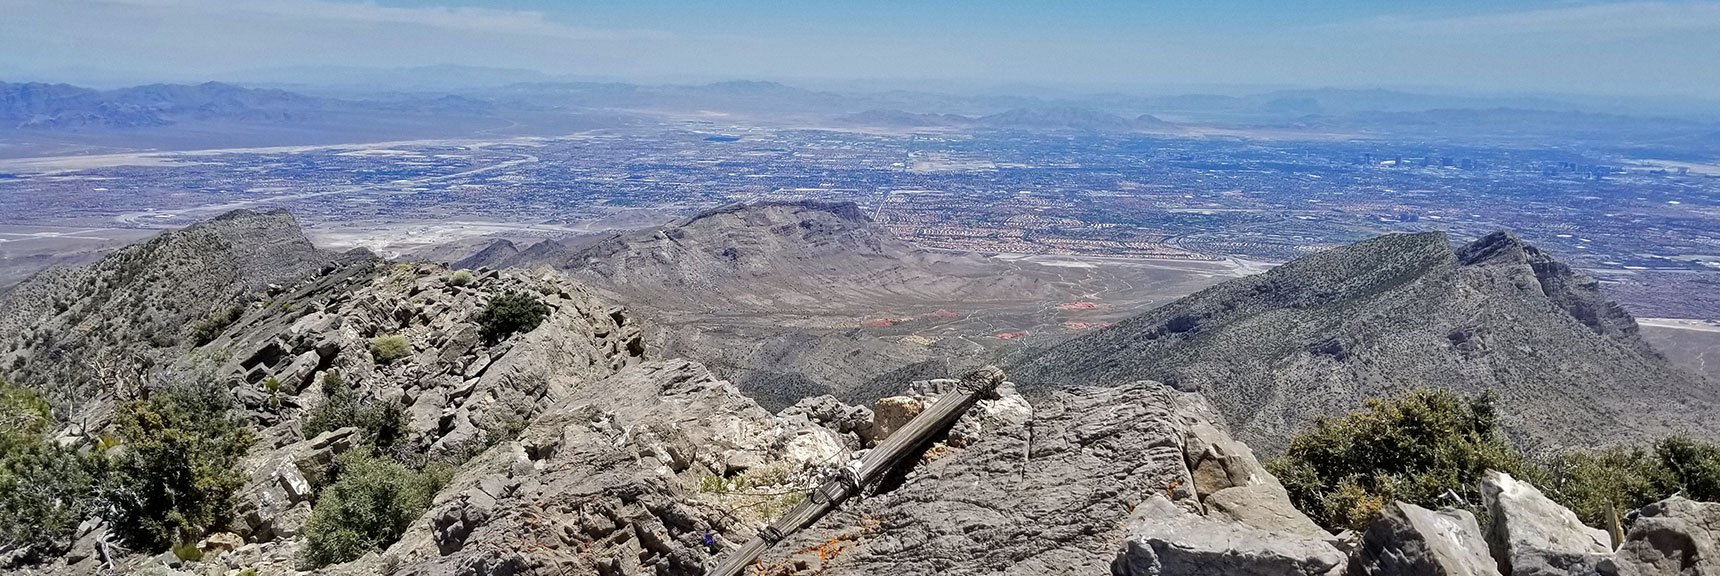 Mid Las Vegas Valley from La Madre Mountain Summit | La Madre Mountain Northern Approach, Nevada